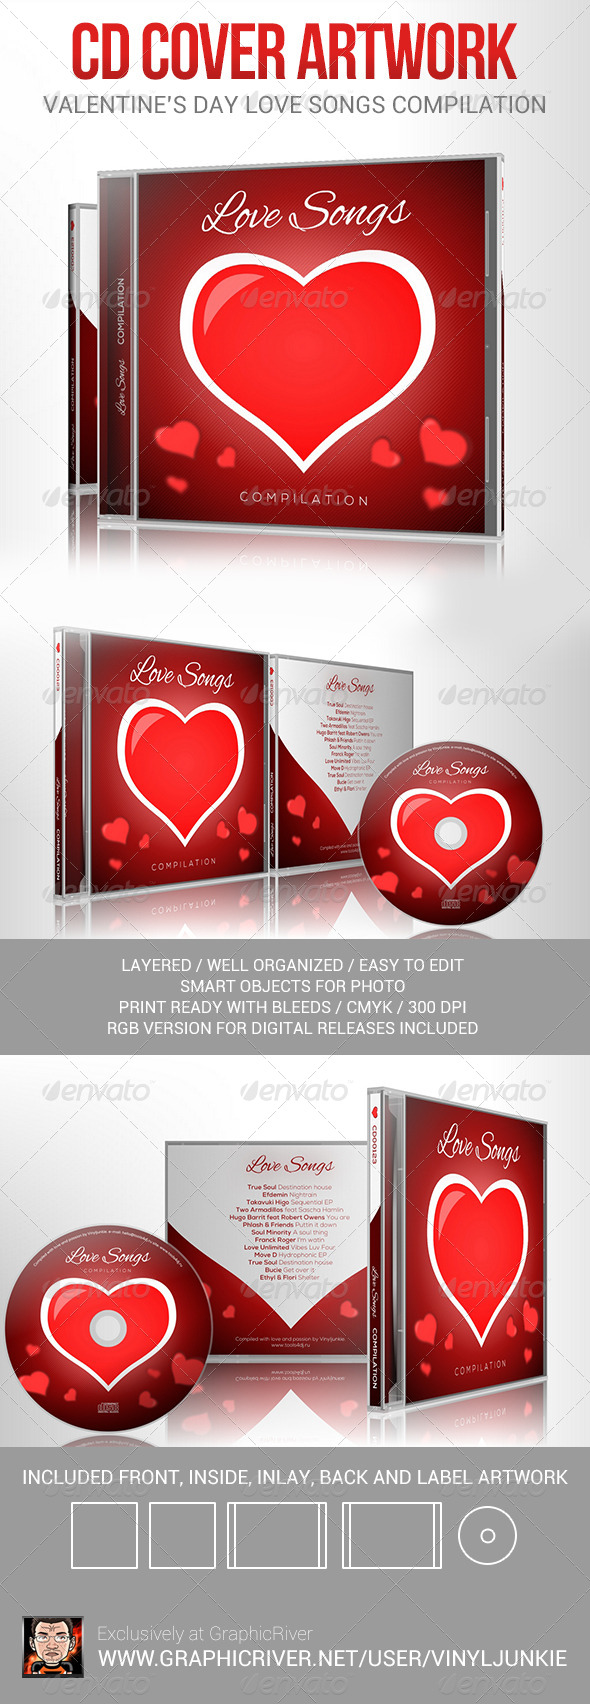 GraphicRiver Love Songs for Valentine s Day CD Cover Artwork 6512774